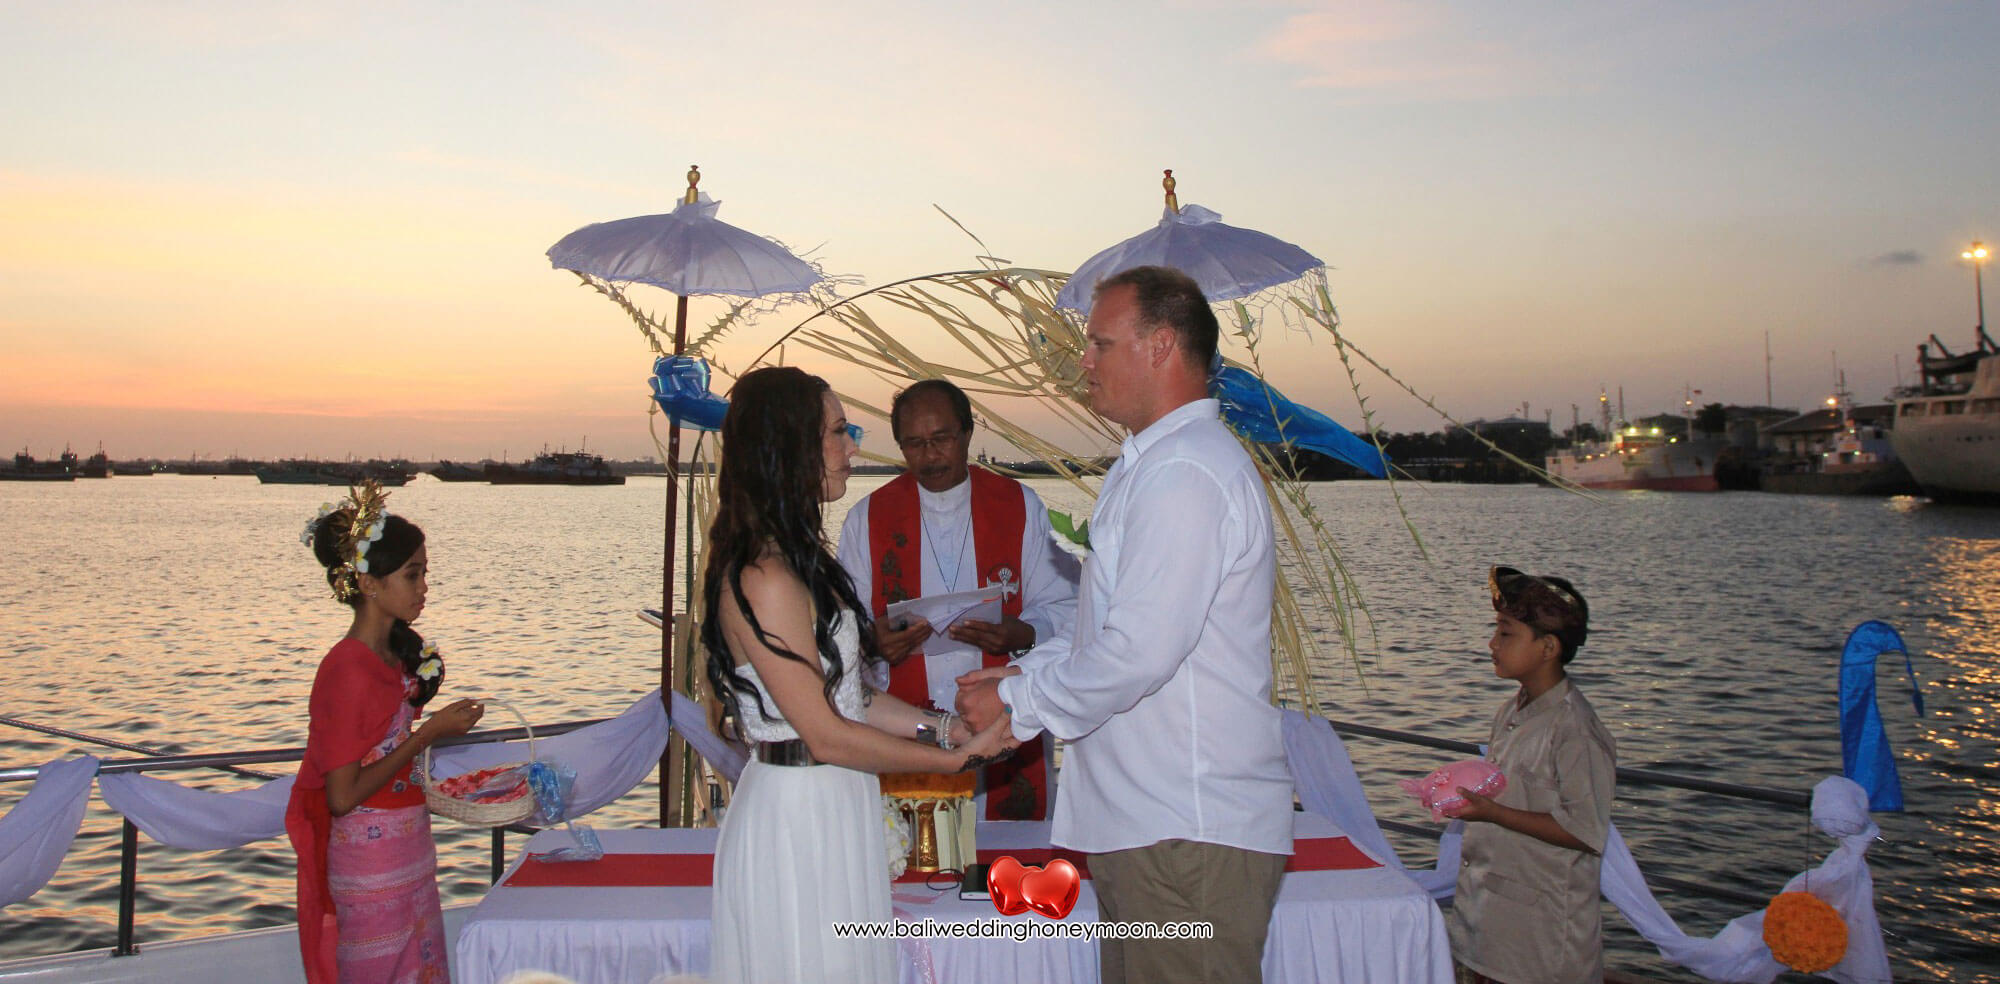 sailsensationcruisebali-weddingvenuebali-uniquebaliwedding-baliweddinghoneymoon-baliweddingorganizer-baliweddingplanner-baliweddingpackage2